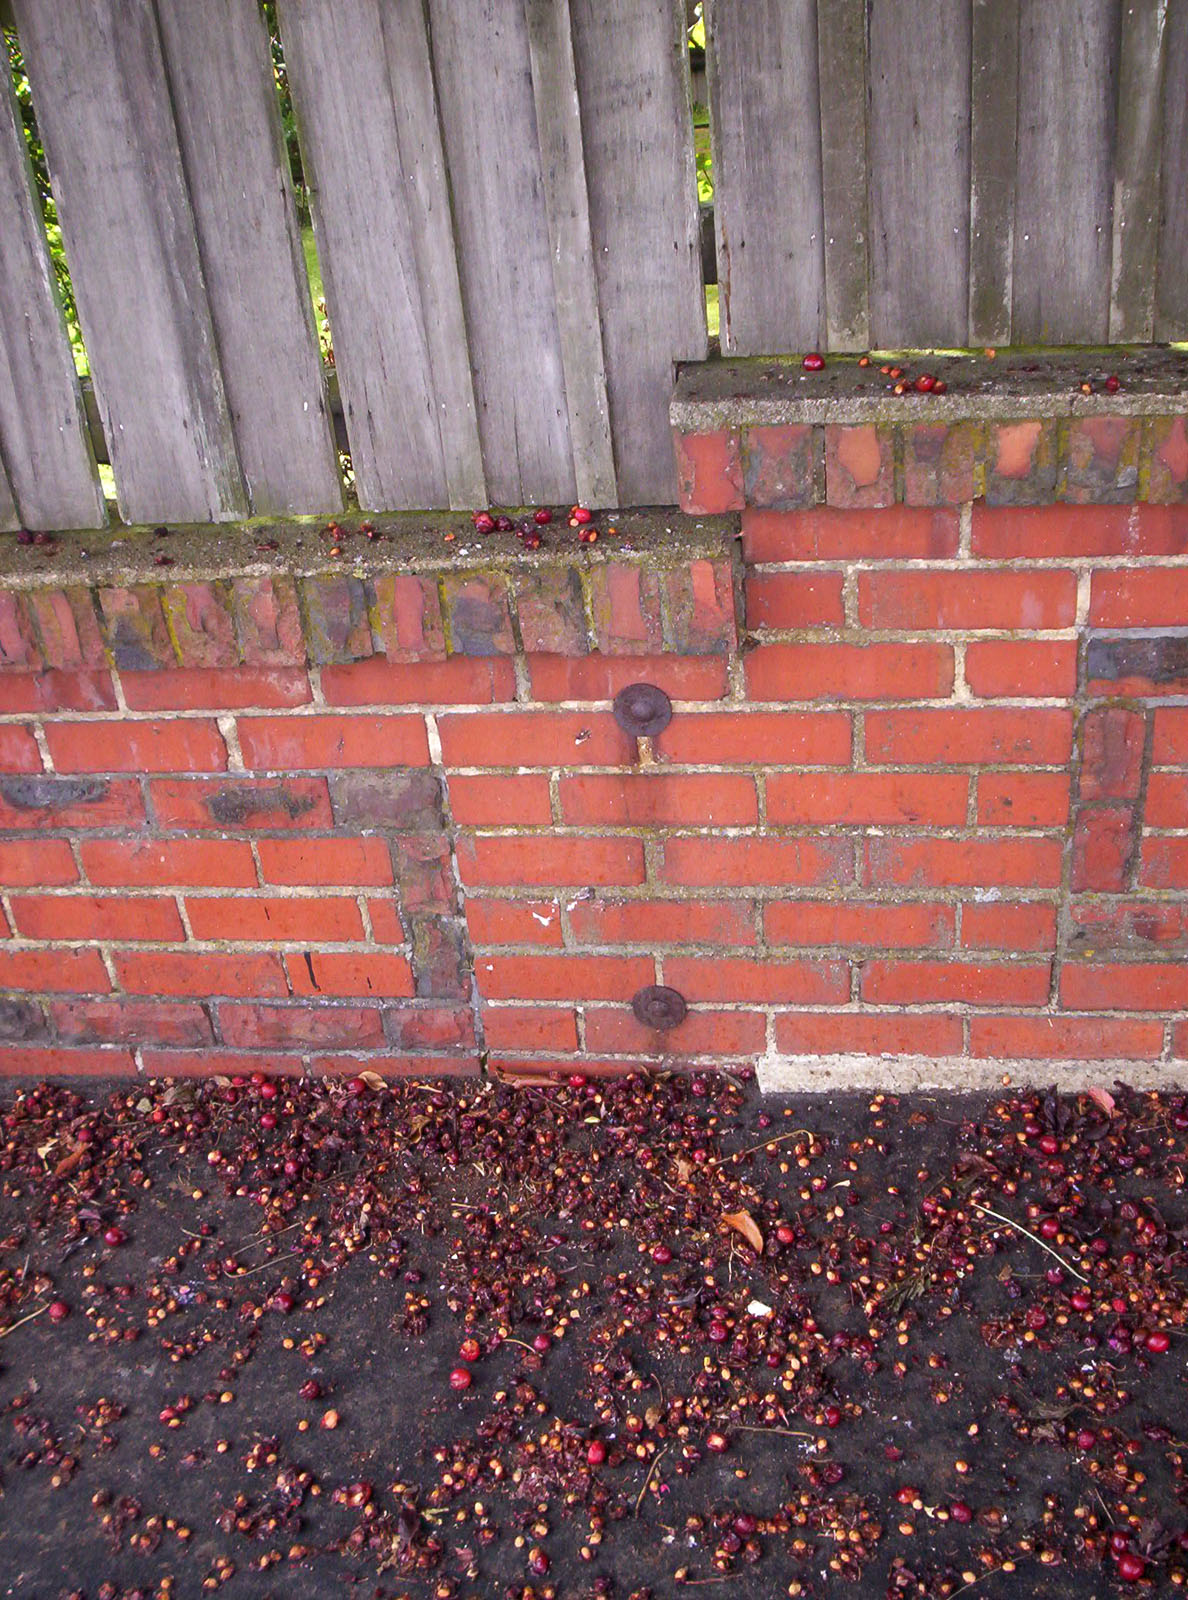 Stoned Brick Wall, Bolts, Objects, Wall, Tiles, HQ Photo